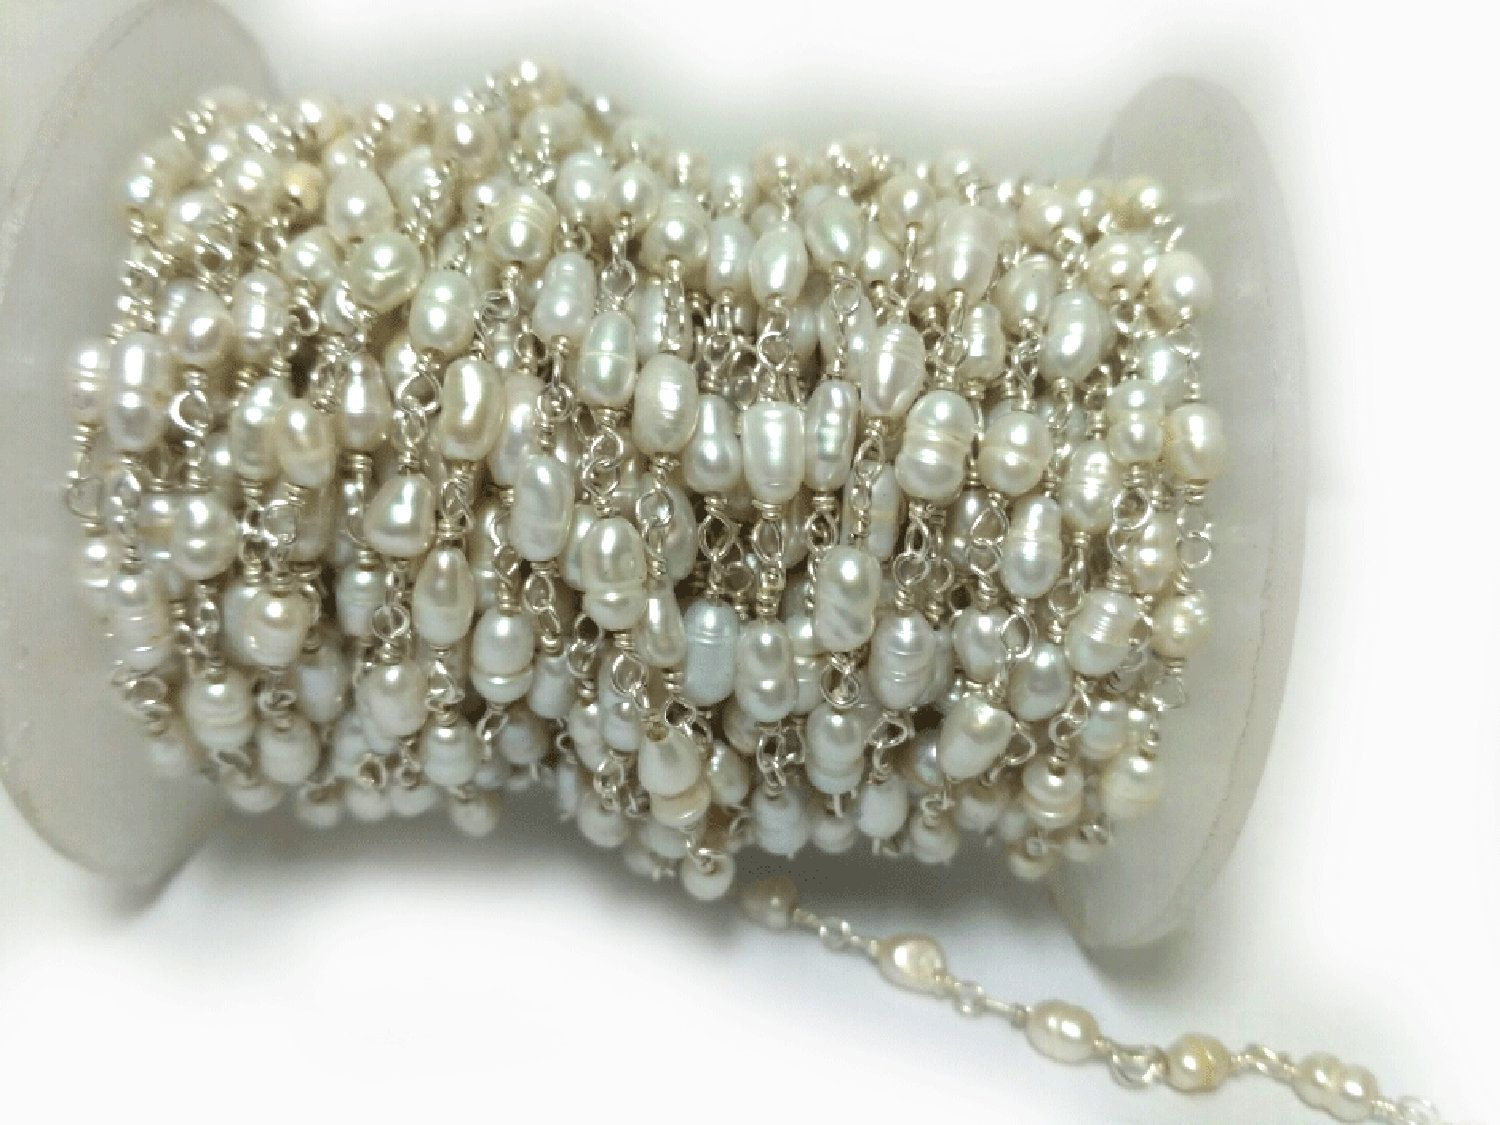 1 Feet Wholesale Rise Pearl Wire Wrapped 925 Silver Polished Chain - Pearl Beads Rosary Style Chain, Rosary jewelry making Chains By Foot